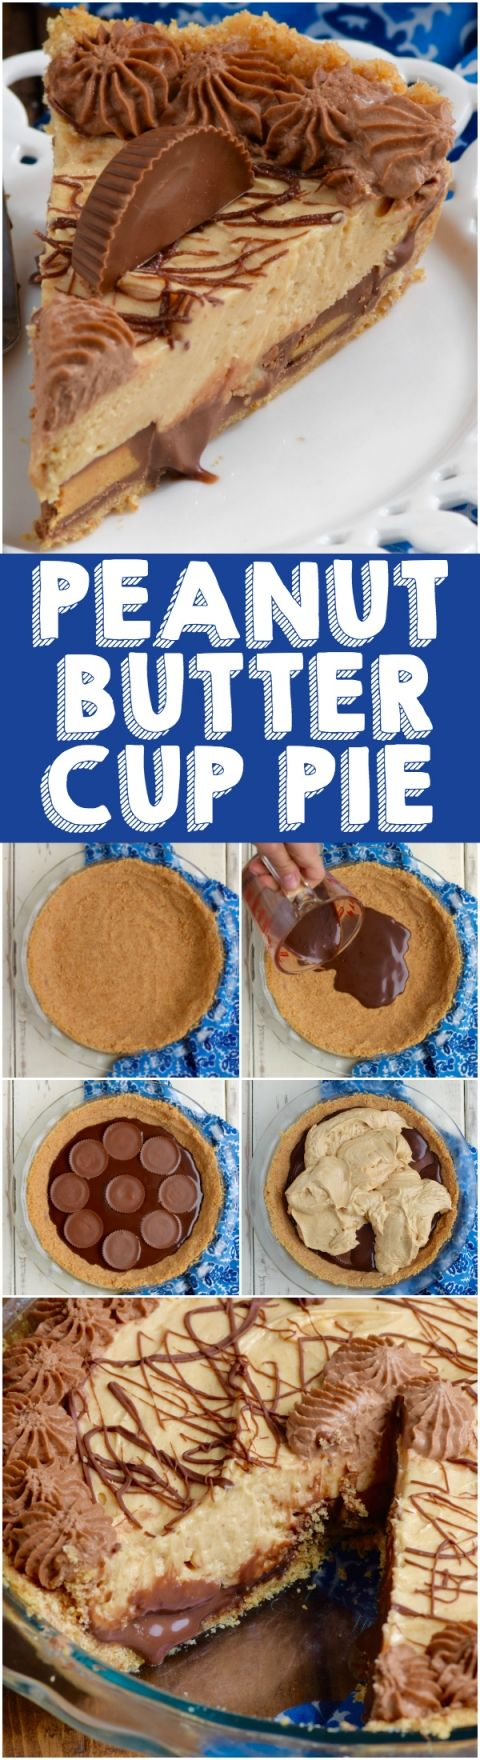 This Peanut Butter Cup Pie is layer upon layer of absolute deliciousness! Peanut Butter Lovers, this is for you!